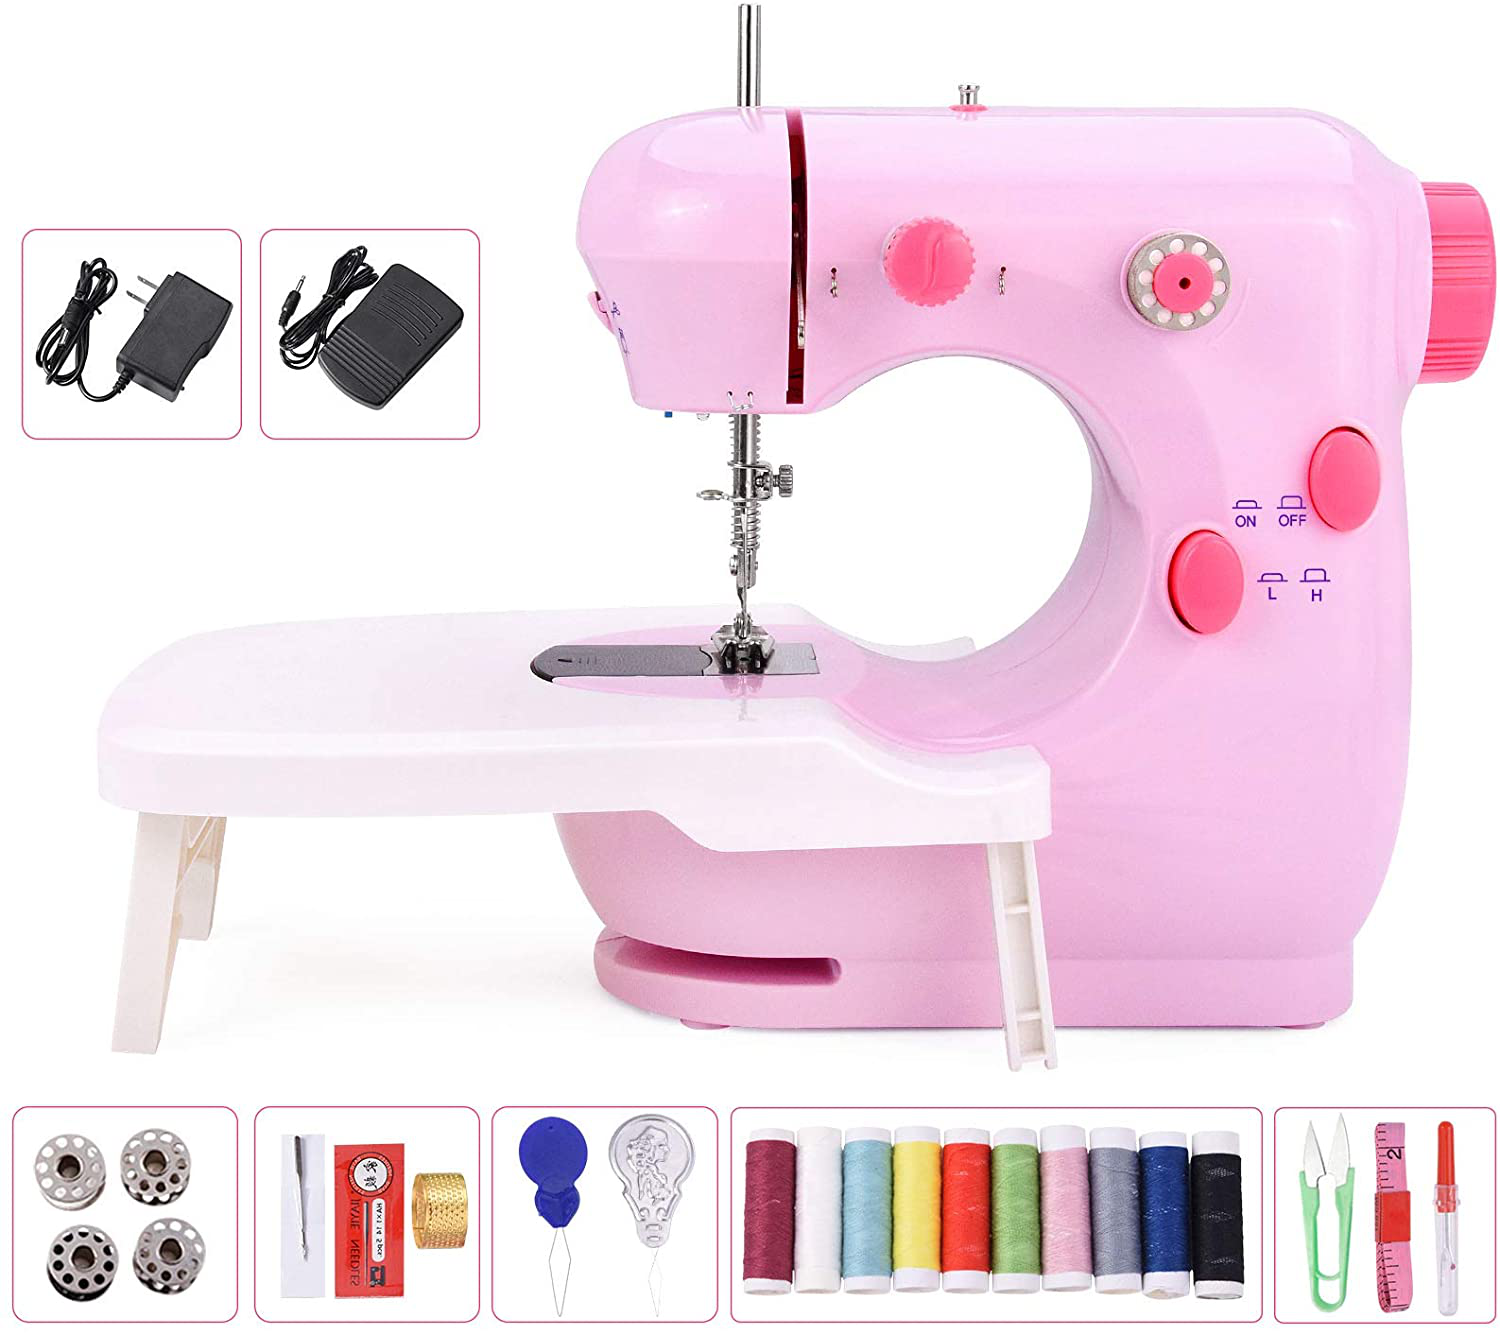 Portable Lightweight Household Sewing Kit for Beginner Yi Ran Mini Electric Sewing Machine with Upgrade Extension Table Double Thread and Adjustable 2-Speed with Foot Pedal for Home Crafting /& DIY Project